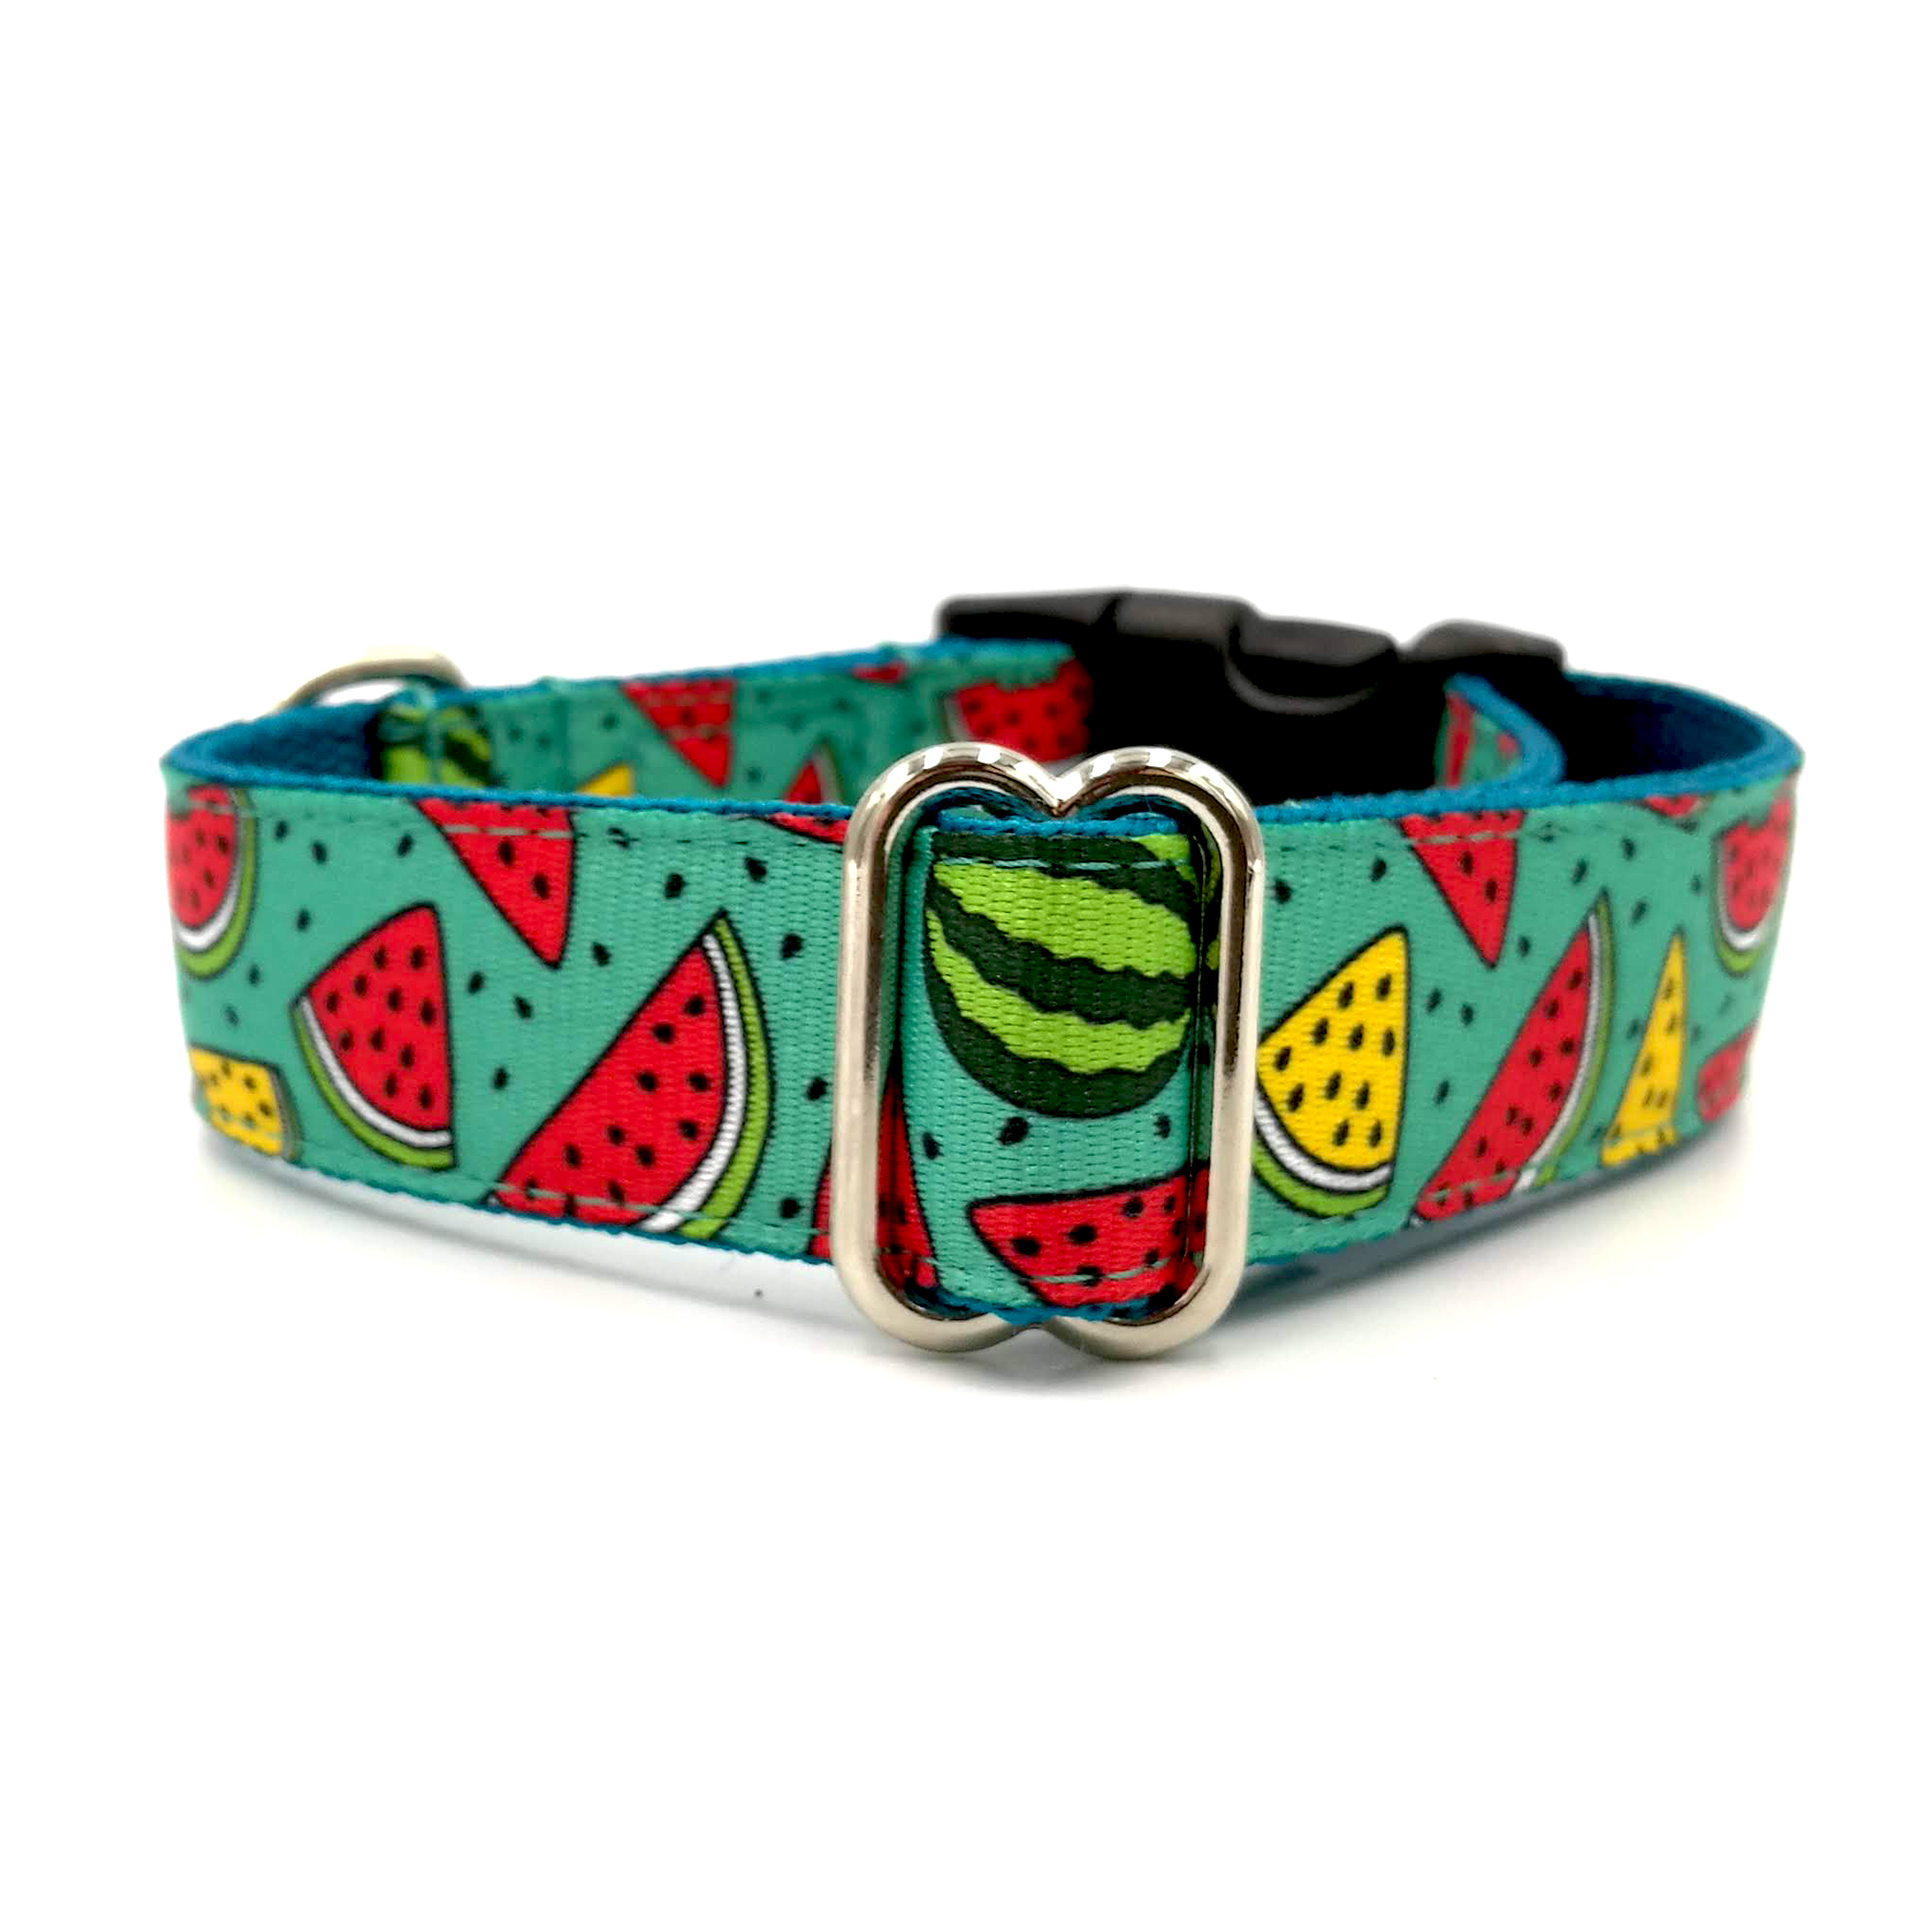 Melon dog collar